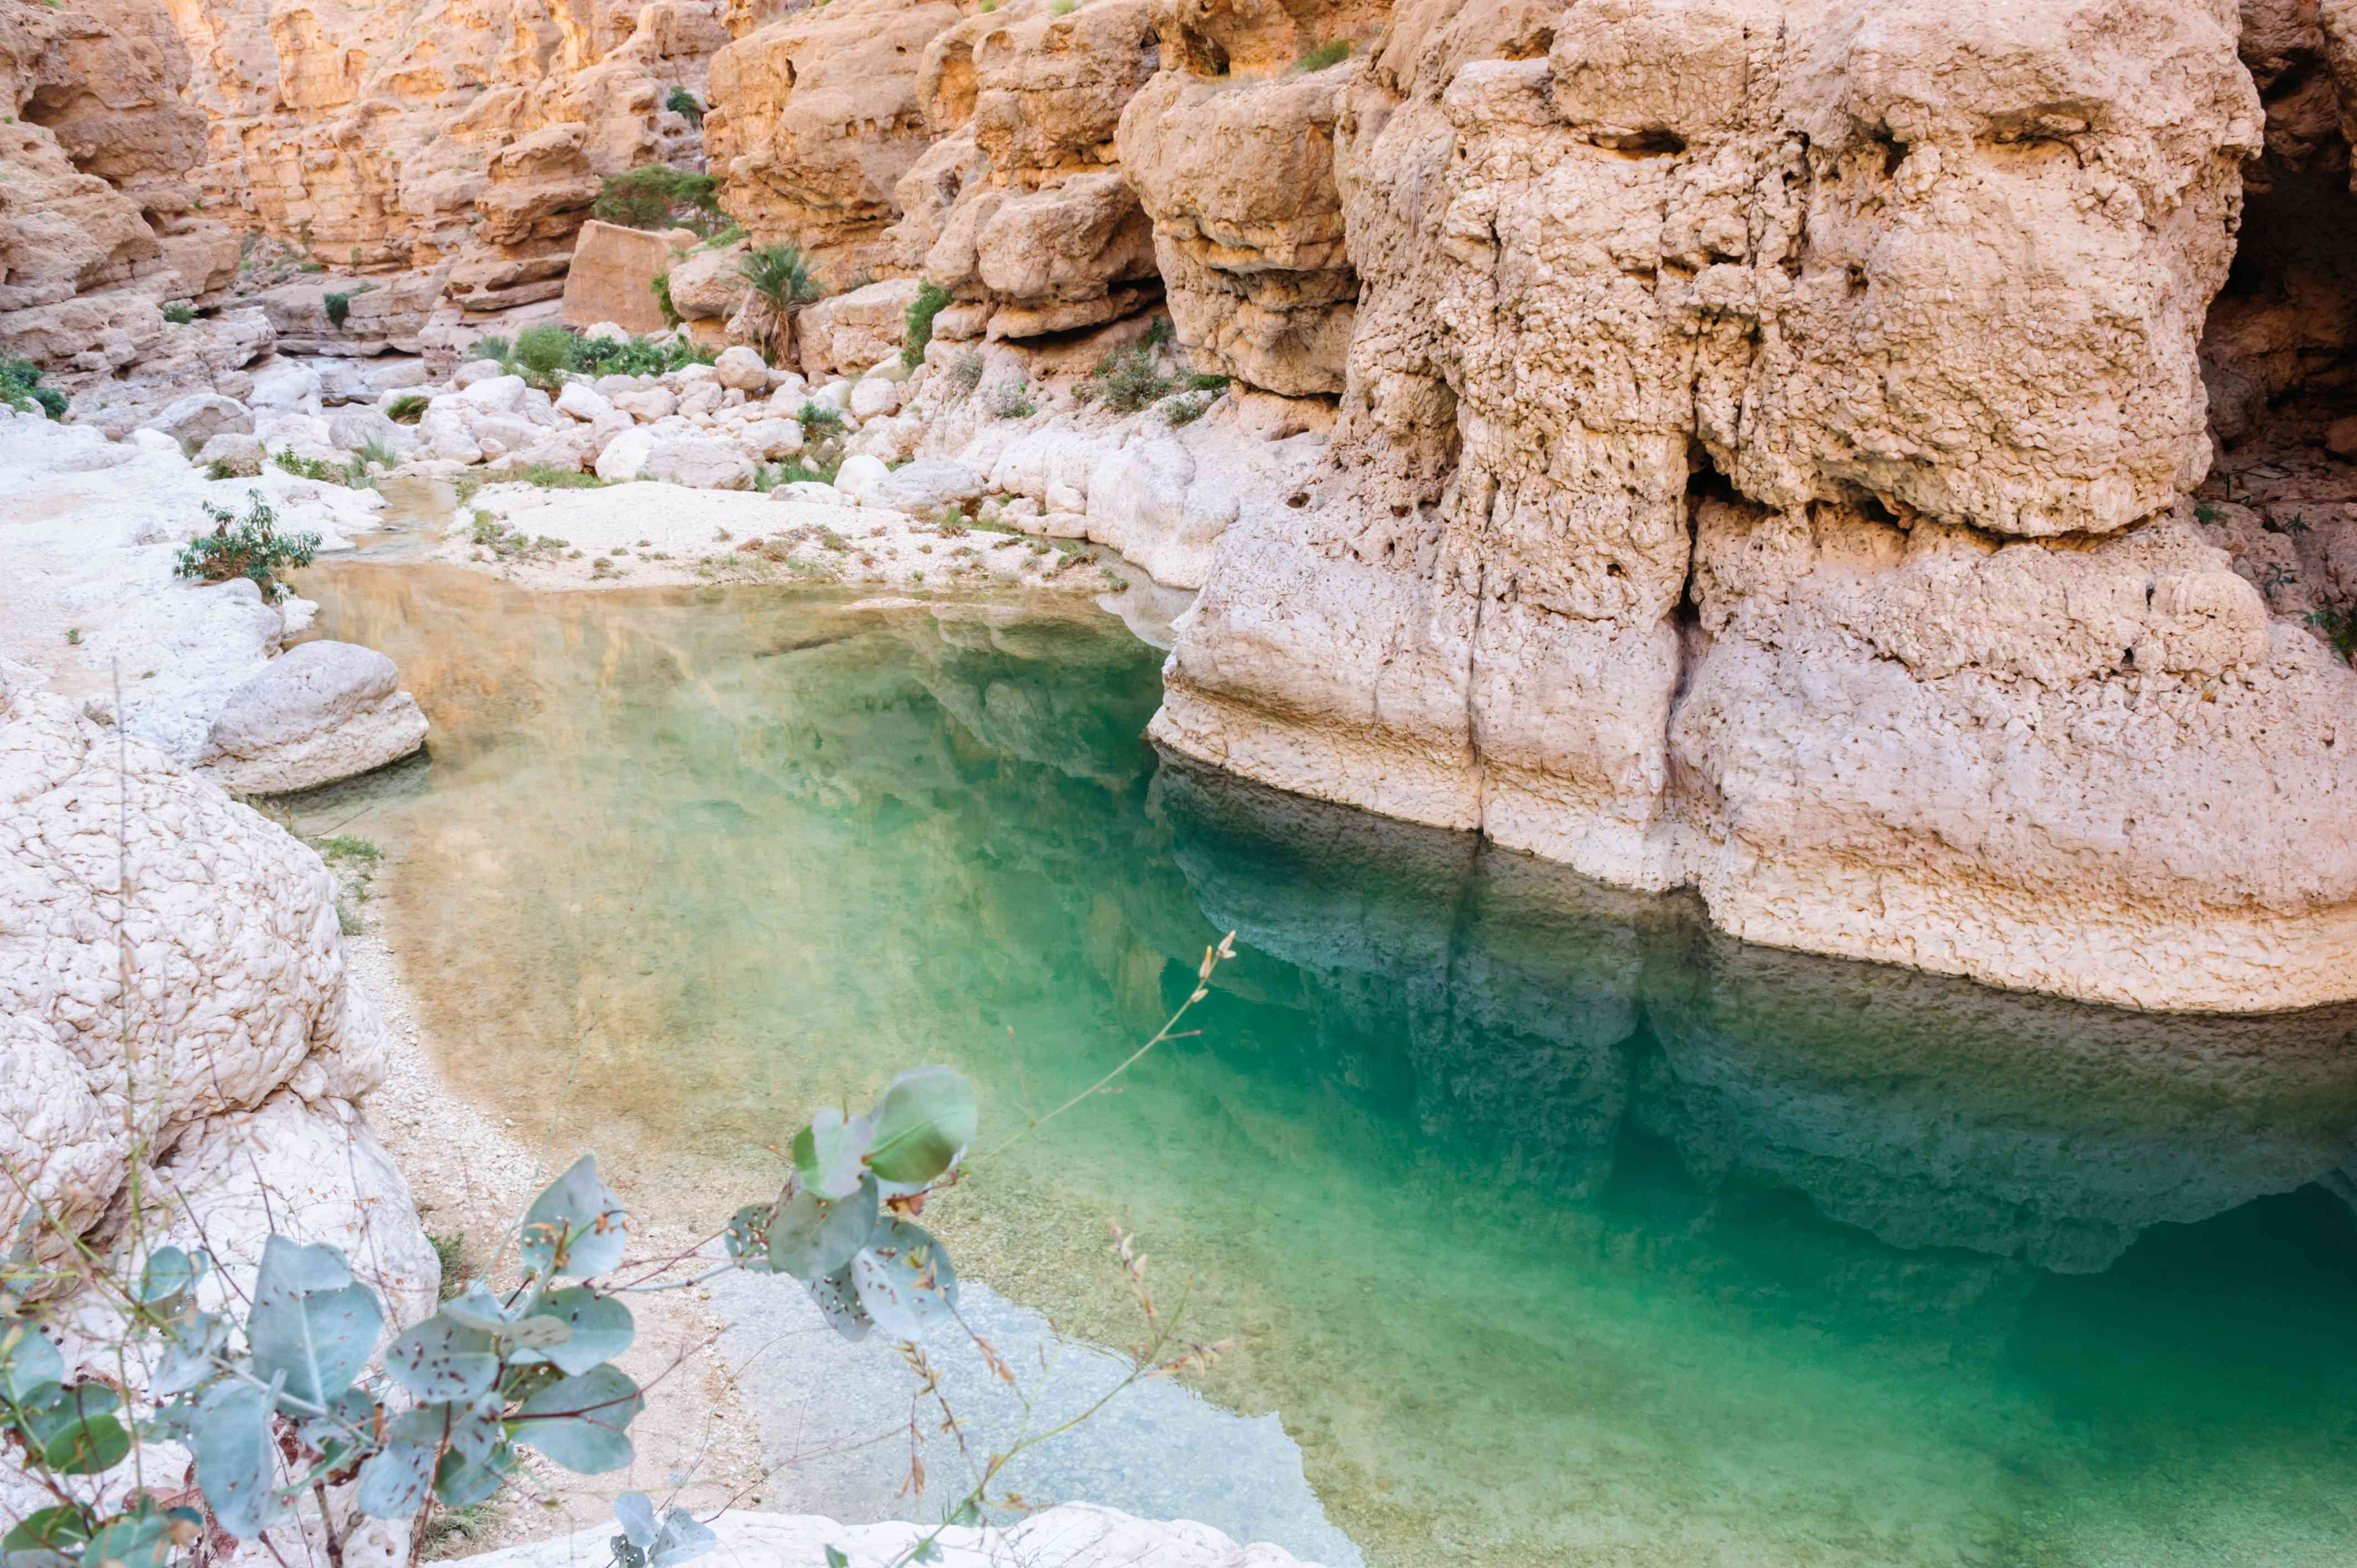 Greenish blue waters surrounded by stone at Wadi Shab